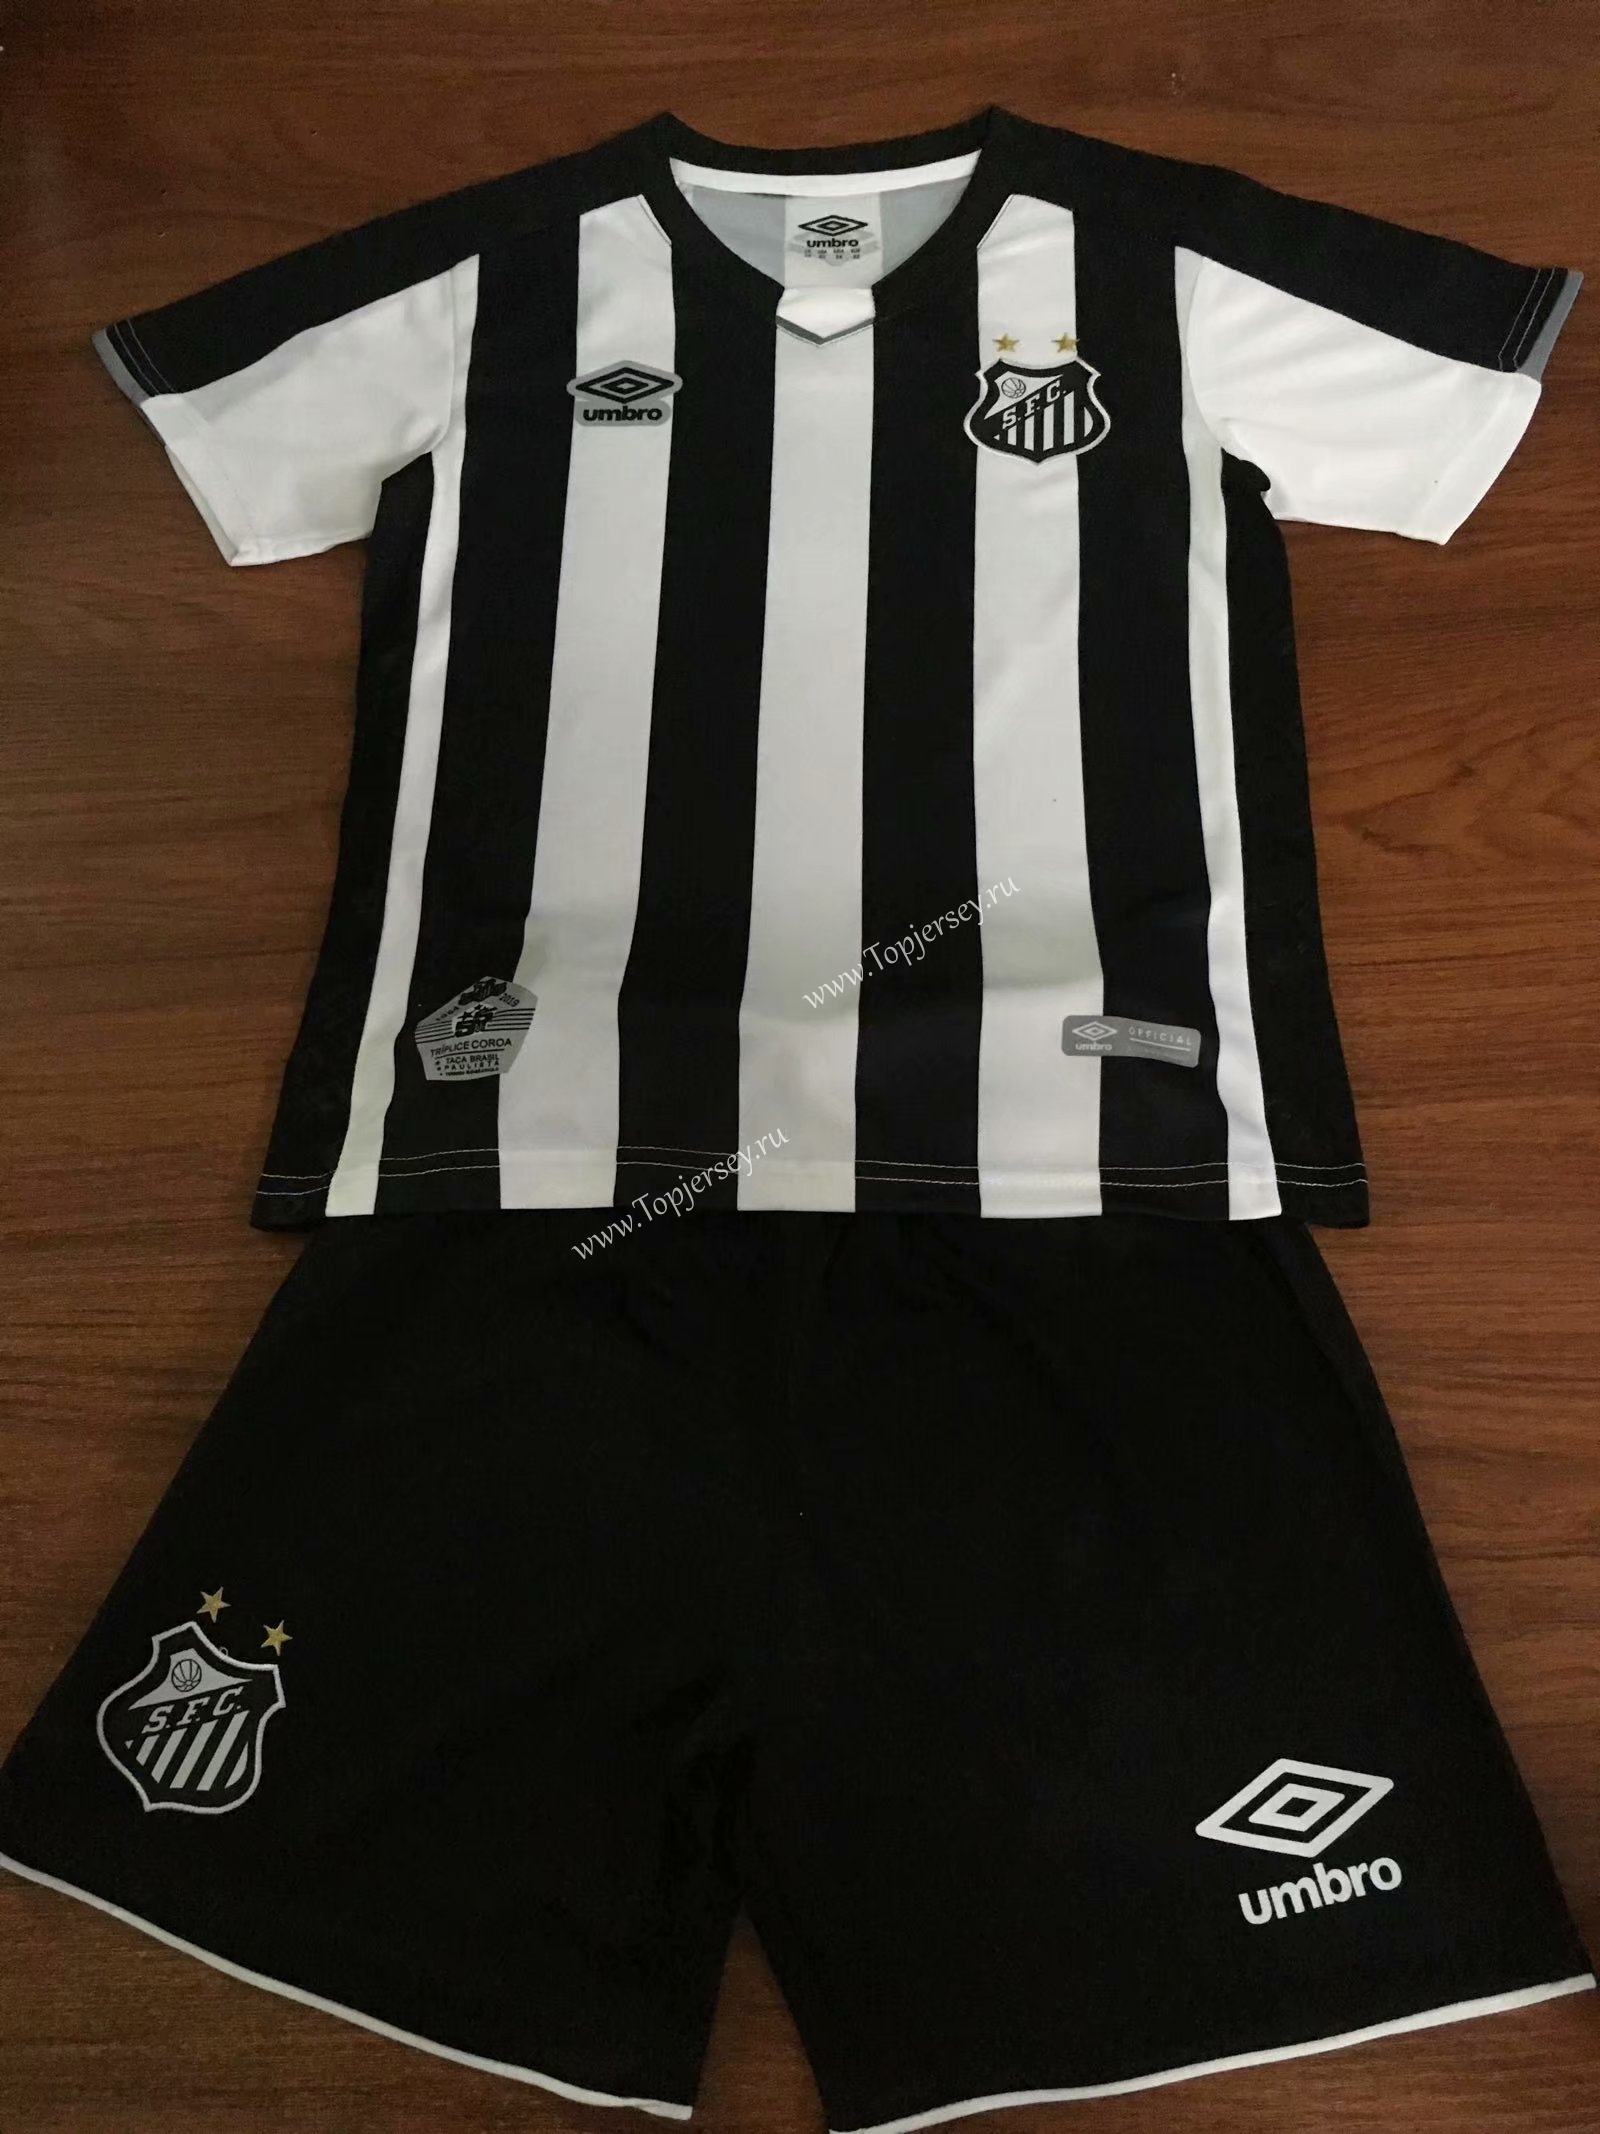 d0b5dd4fd64 2019-2020 Santos FC Home Black & White Kids/Youth Soccer Uniform ...